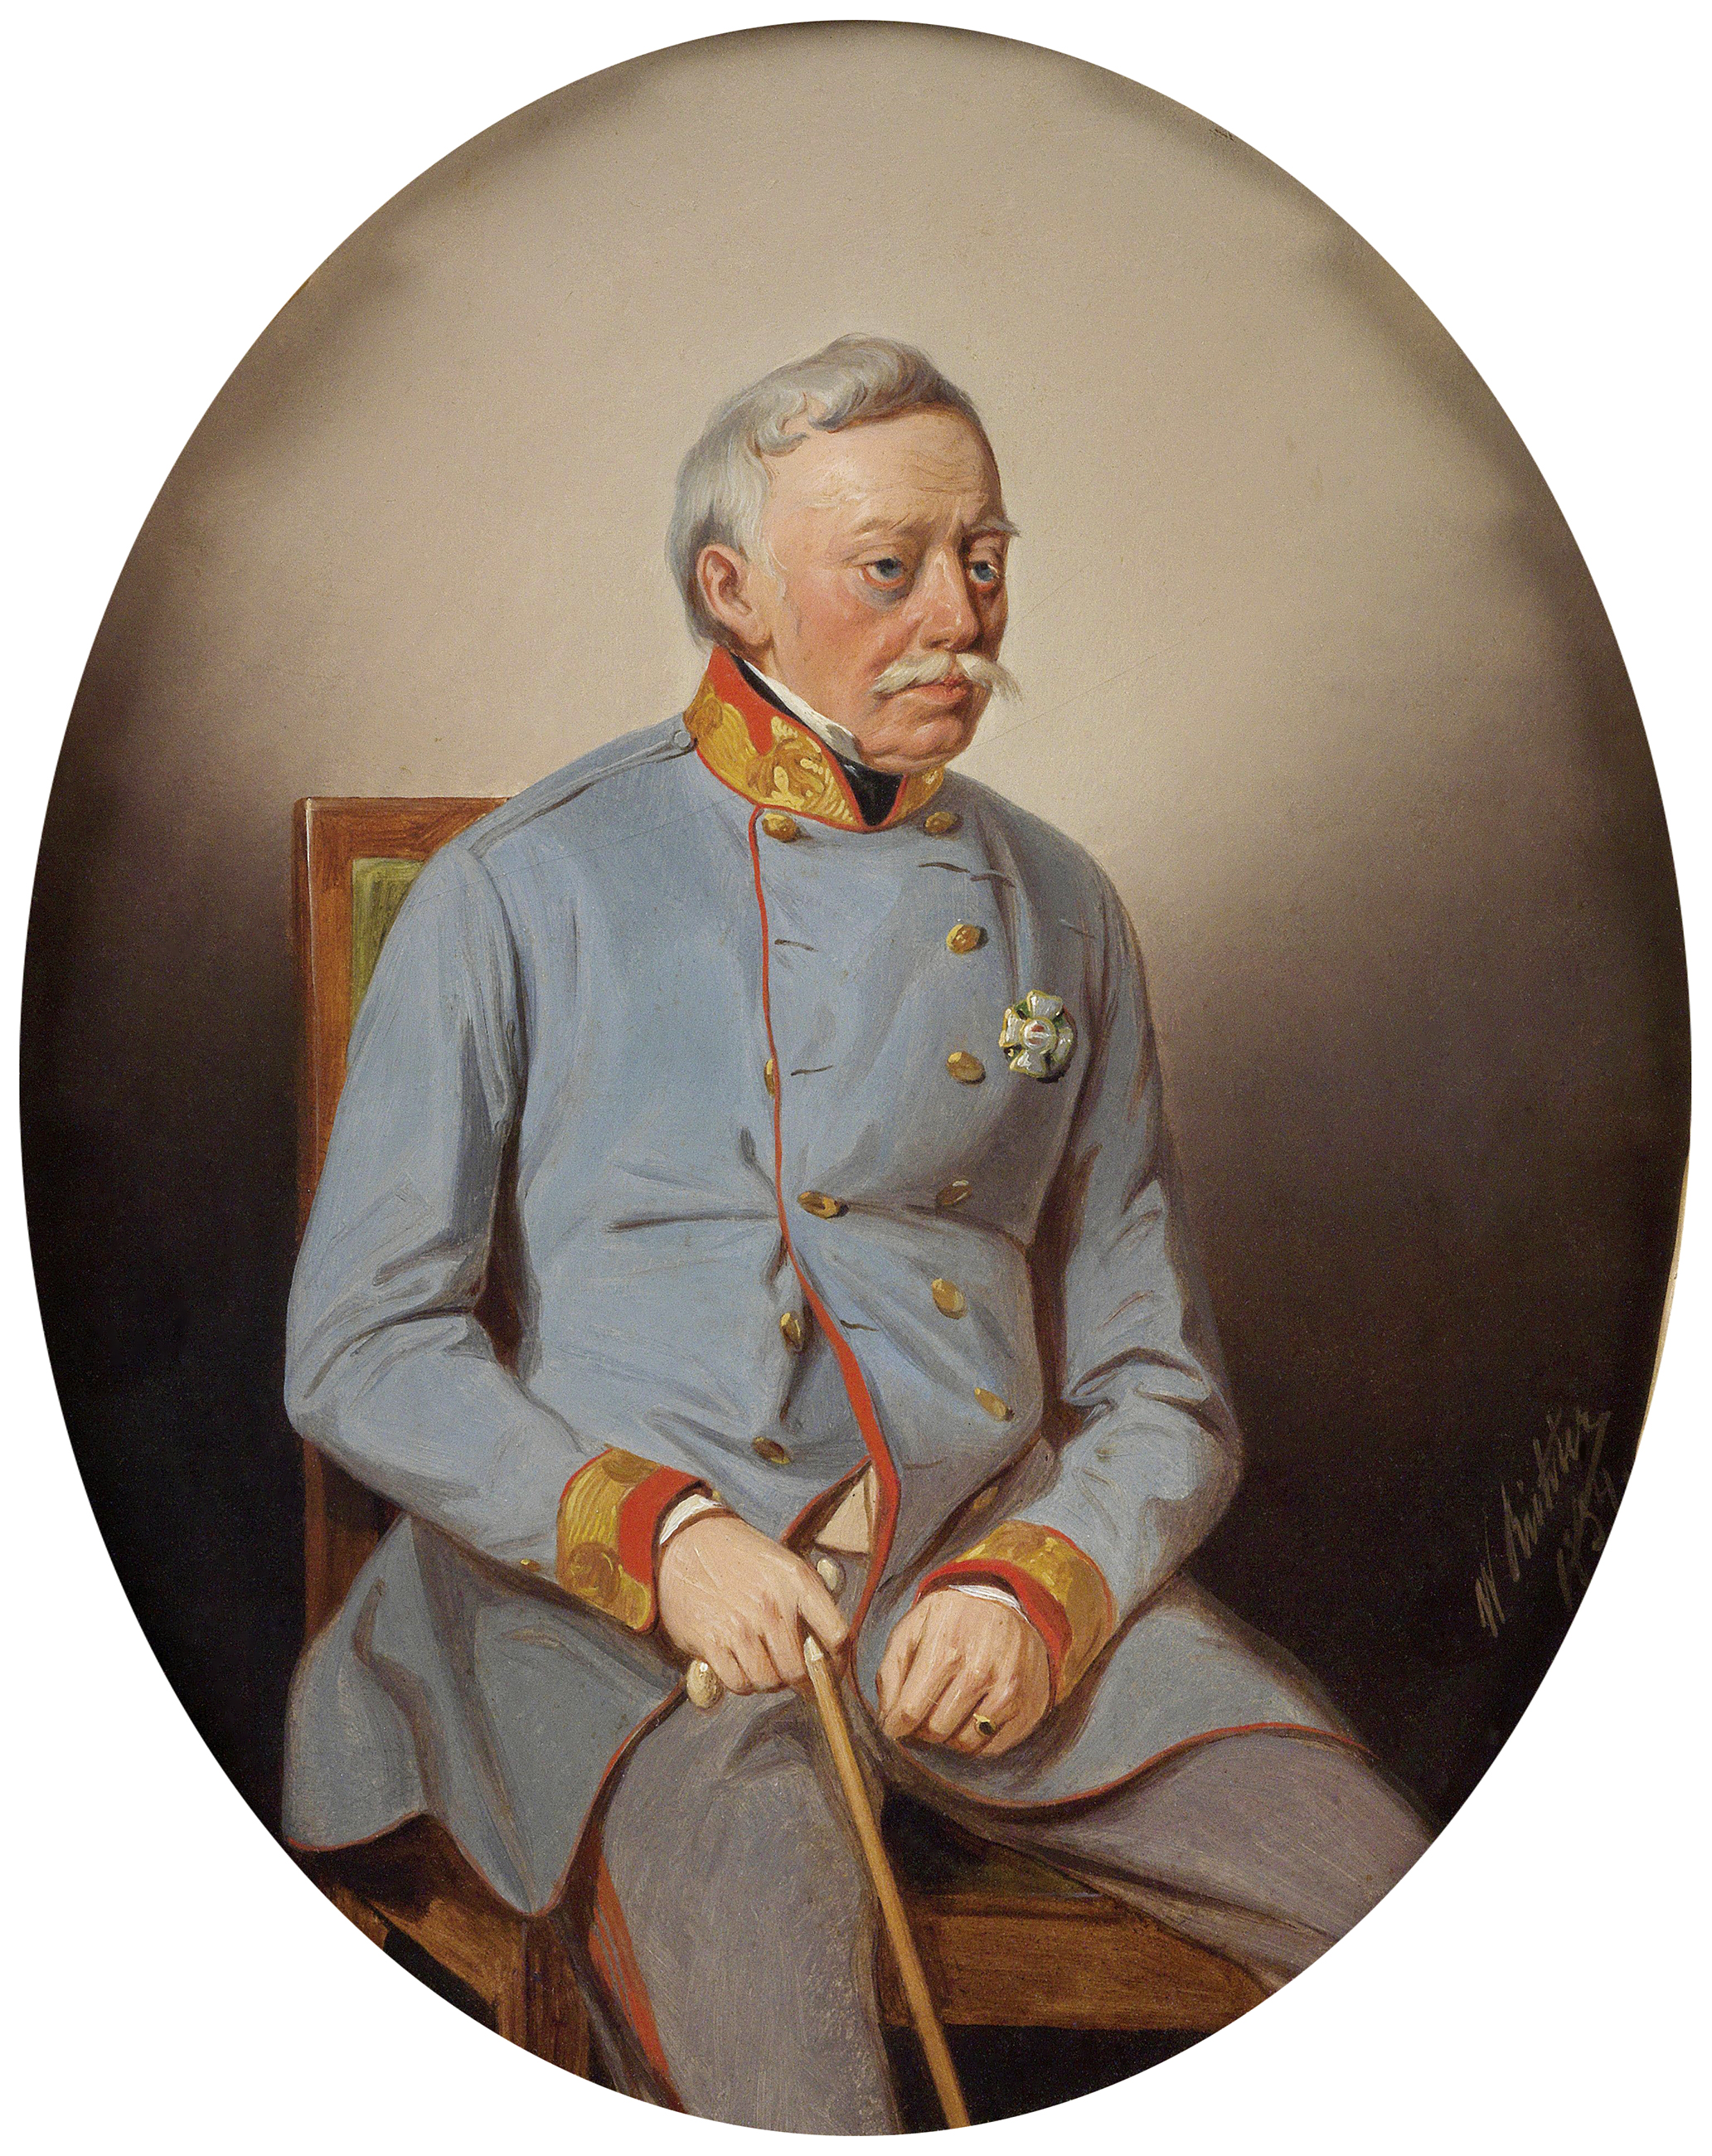 Portrait of Joseph Radetzky von Radetz (1766-1858), Field Marshal of Austria (1836), Viceroy (Governor-General) of the Lombardo-Venetian Kingdom (1848-1857), 1854 | Portraits of Kings